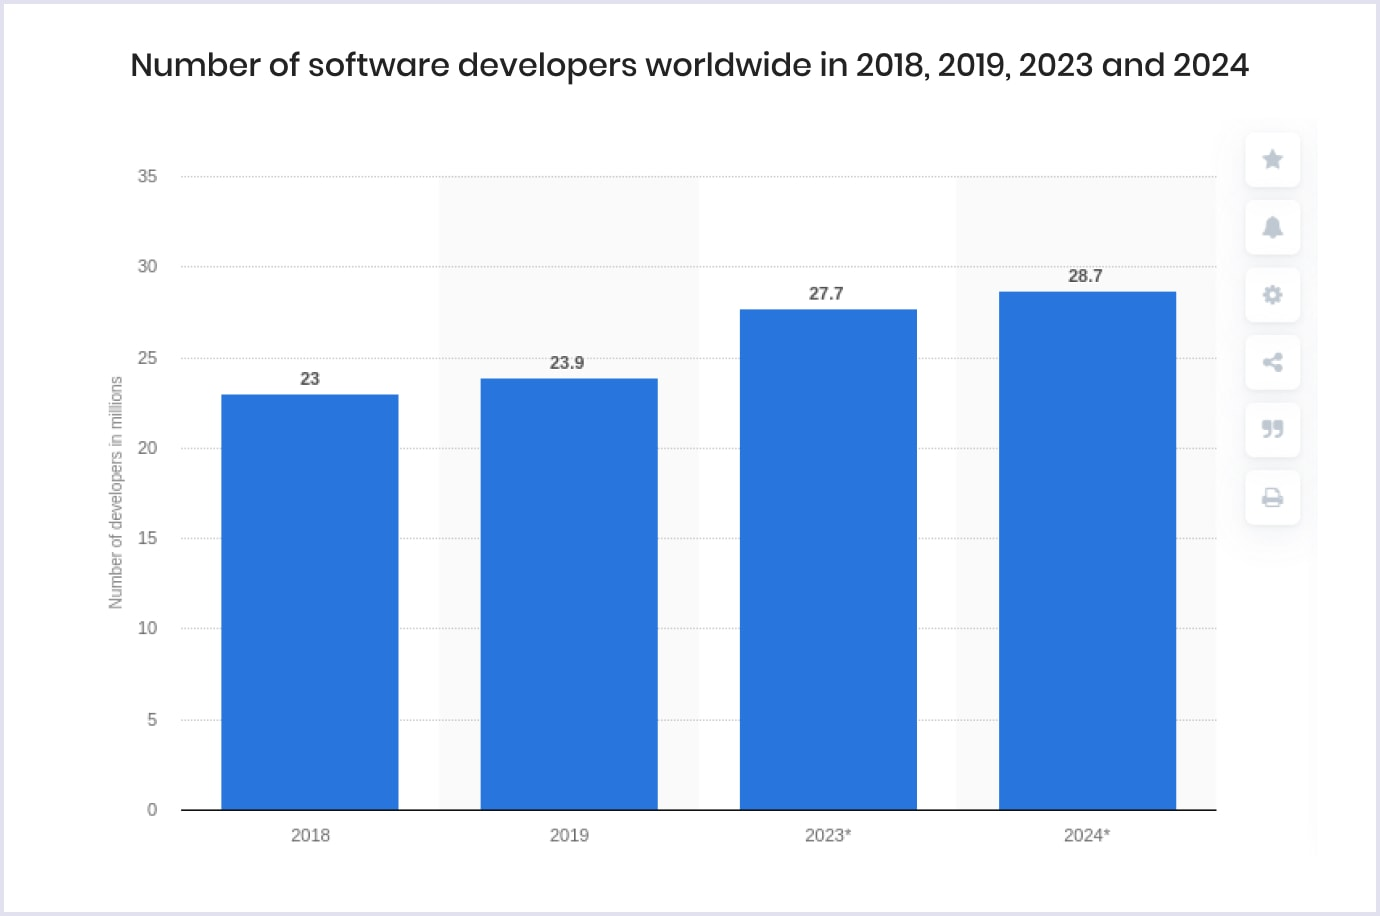 Number of software developers from 2018 to 2024